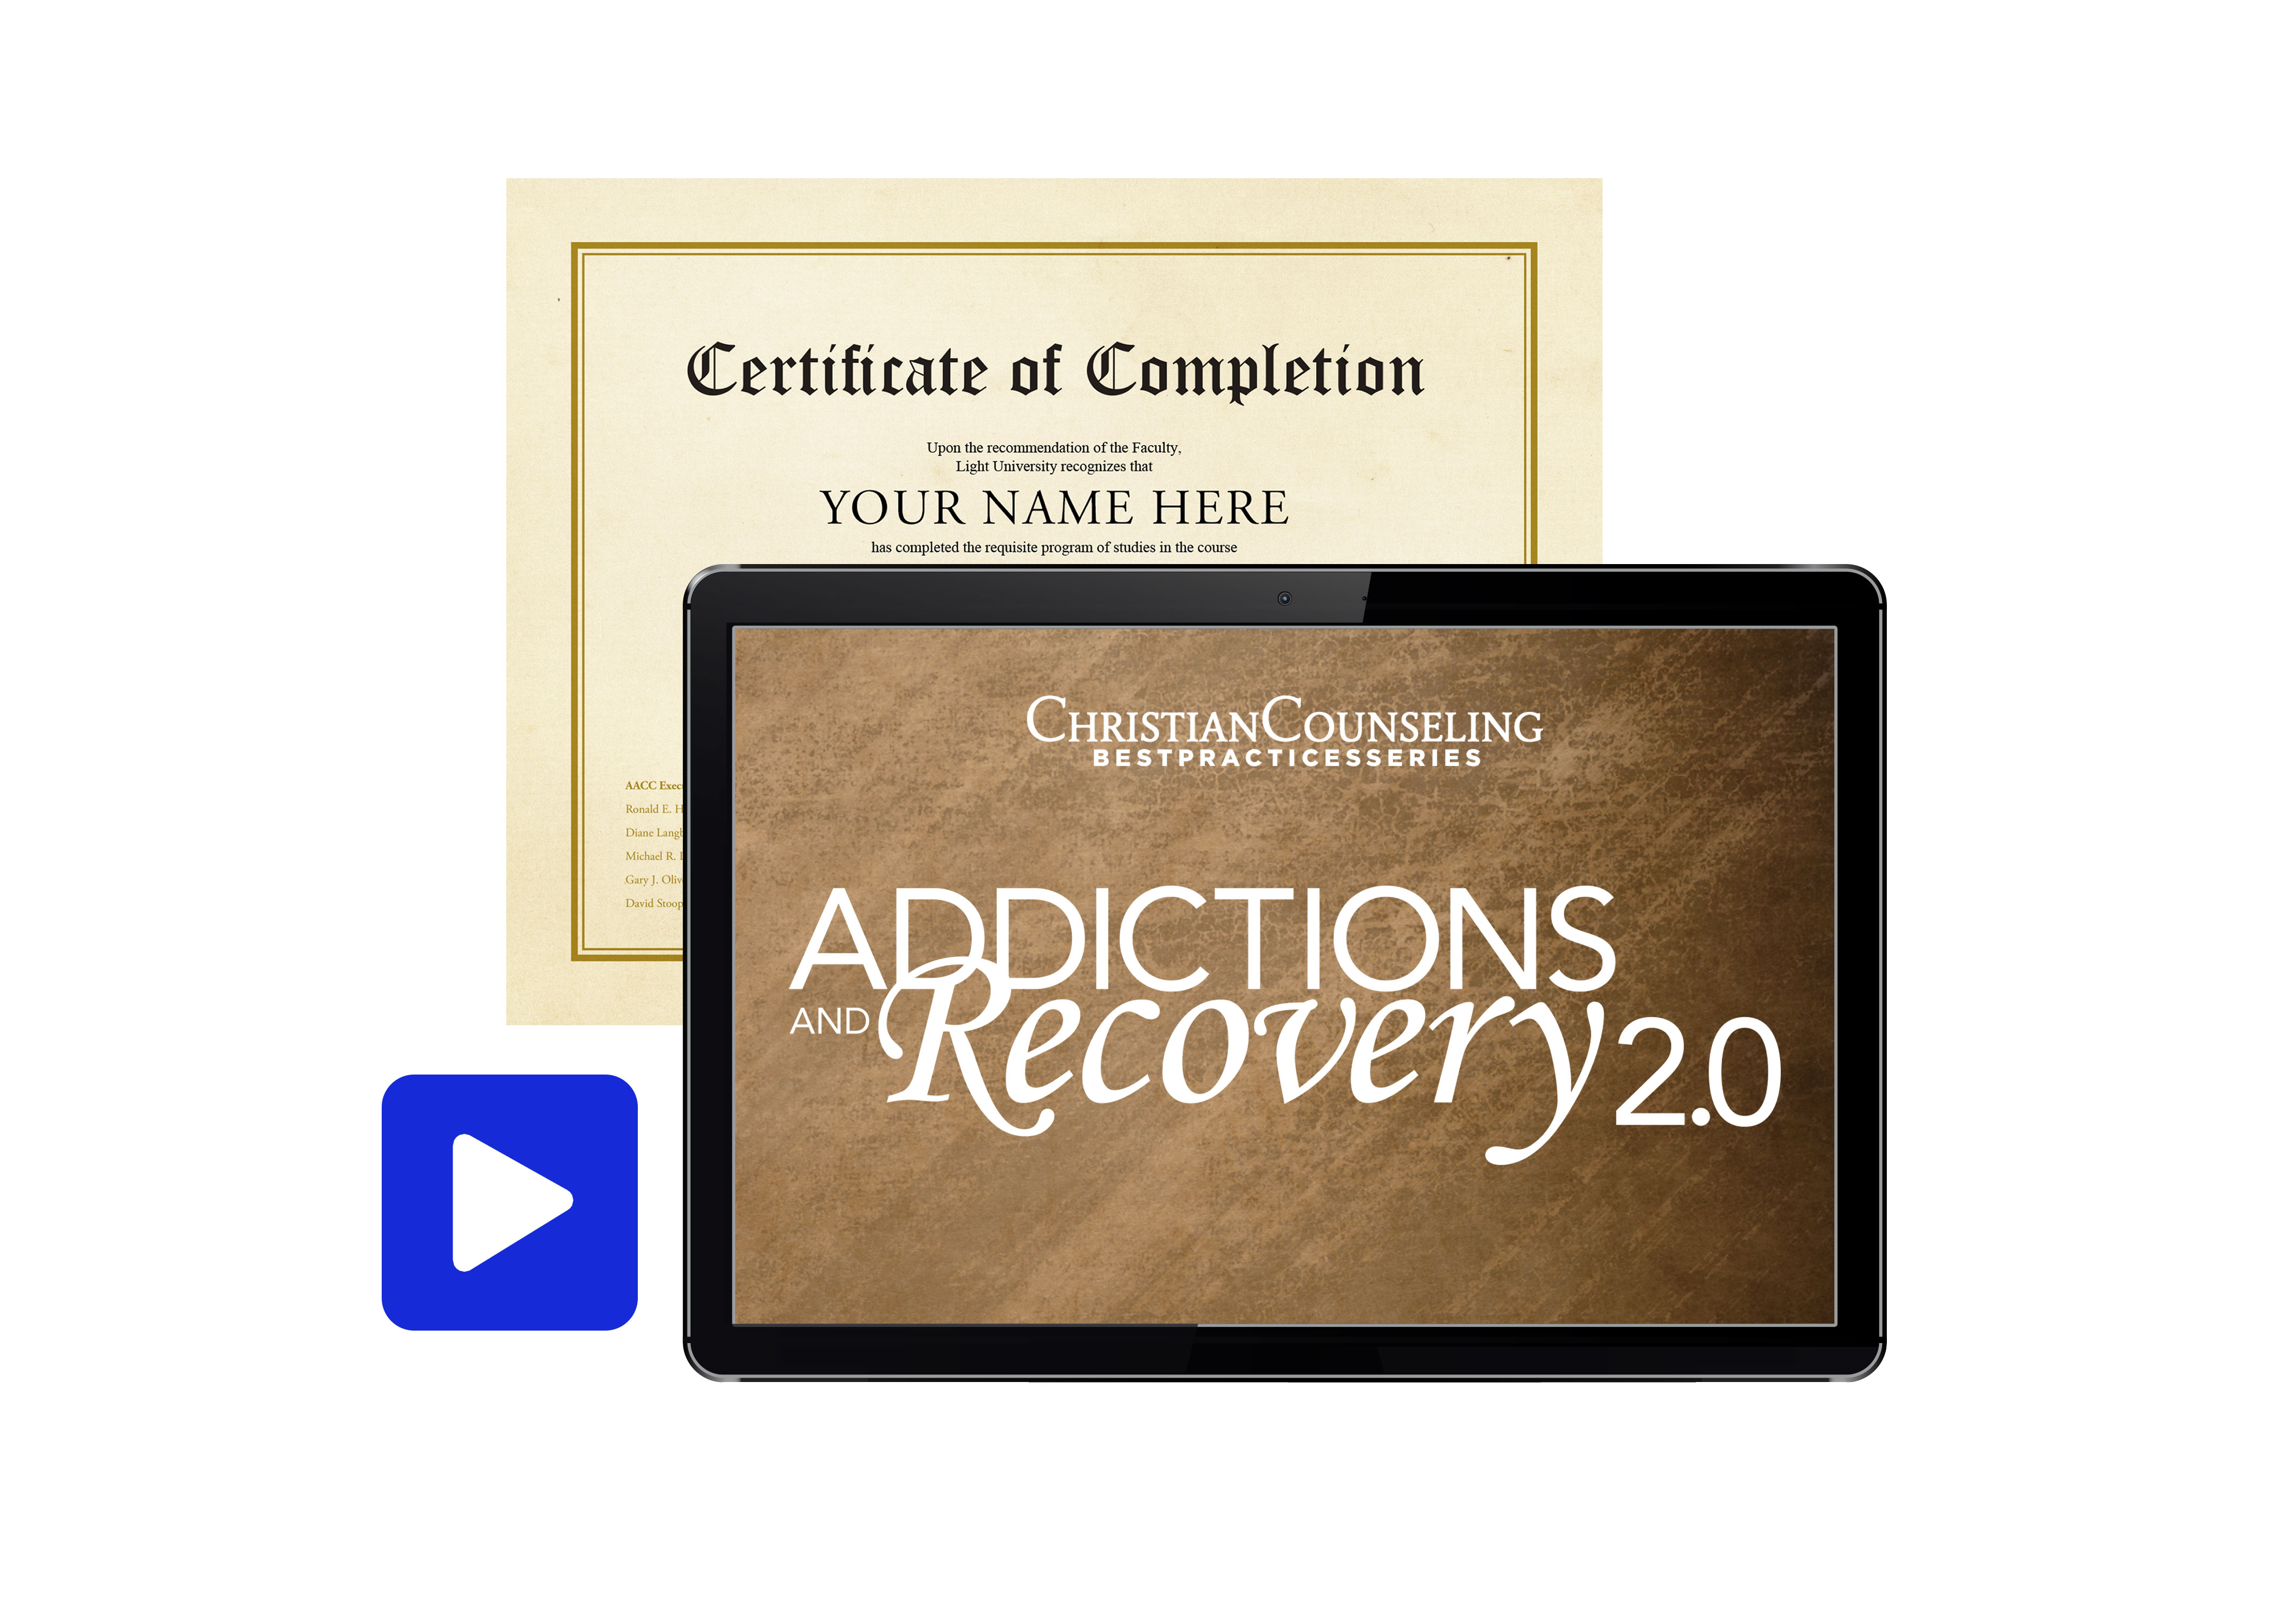 Addiction and Recovery 2.0